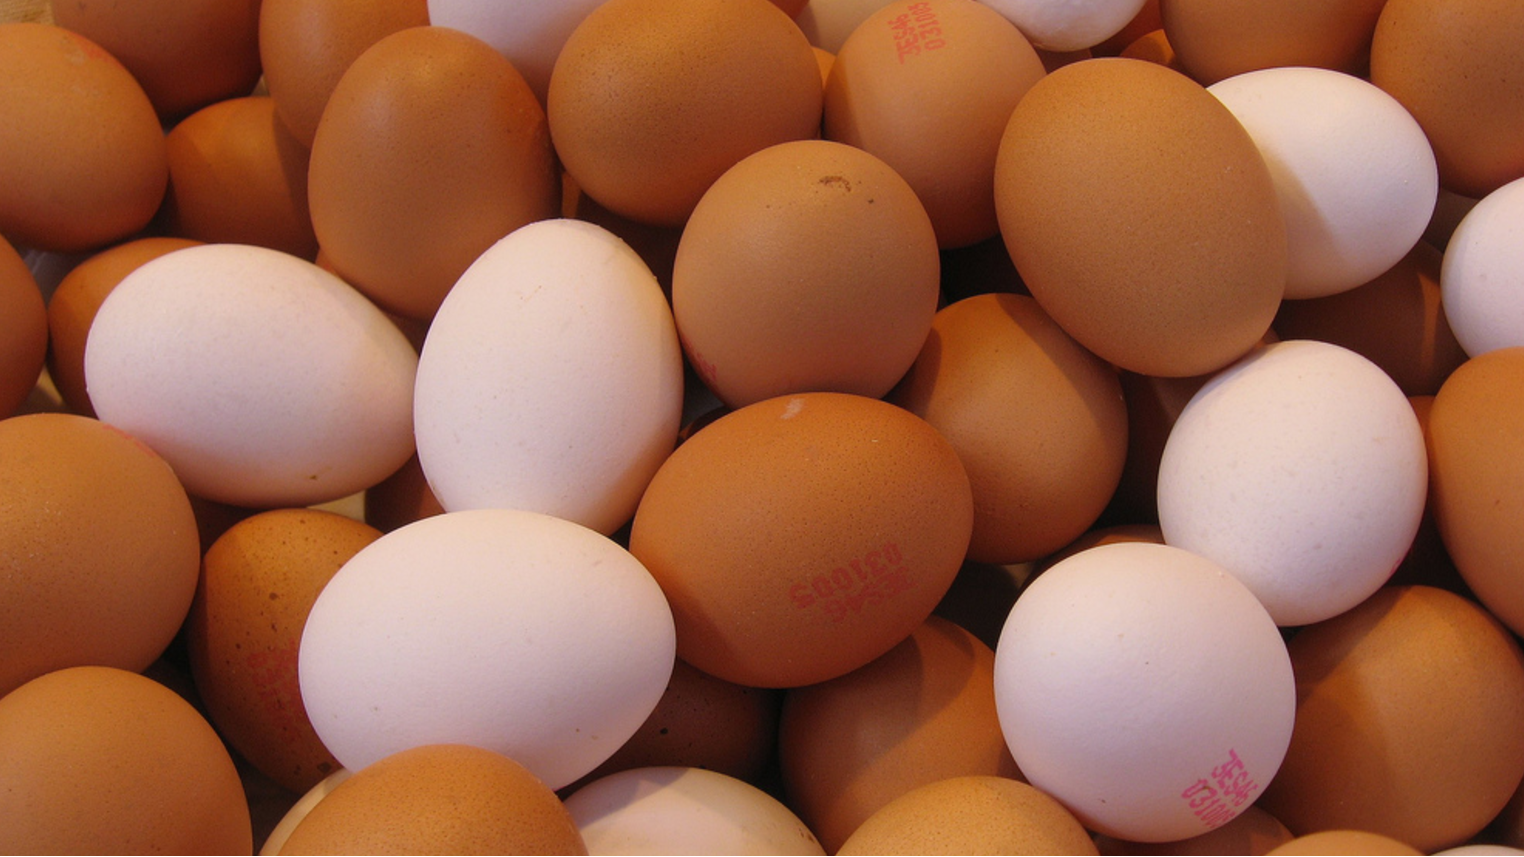 Eggs Contaminated With Fipronil Found In 15 EU Countries And Hong Kong